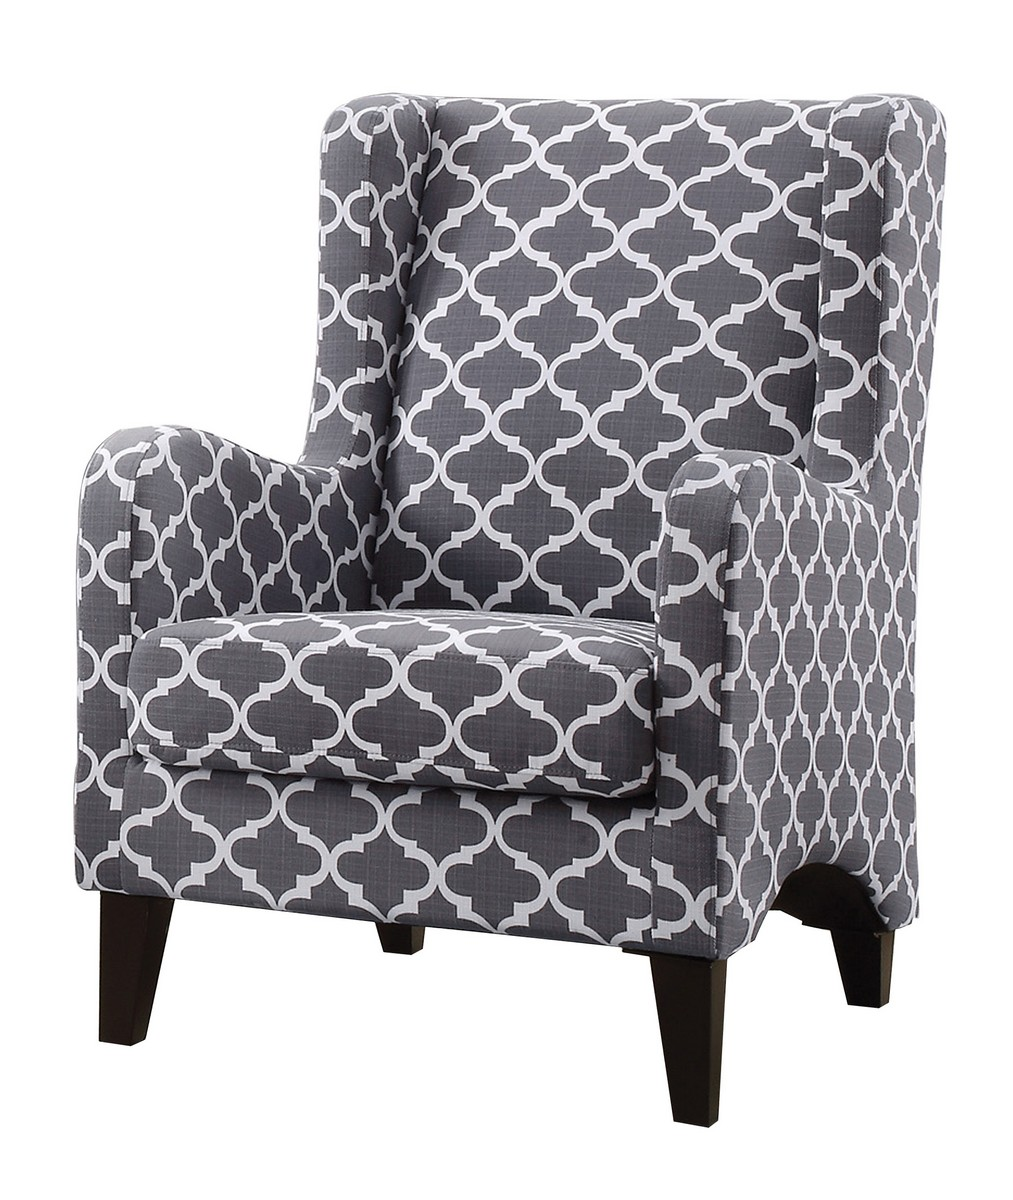 Homelegance Adlai Accent Chair - Grey